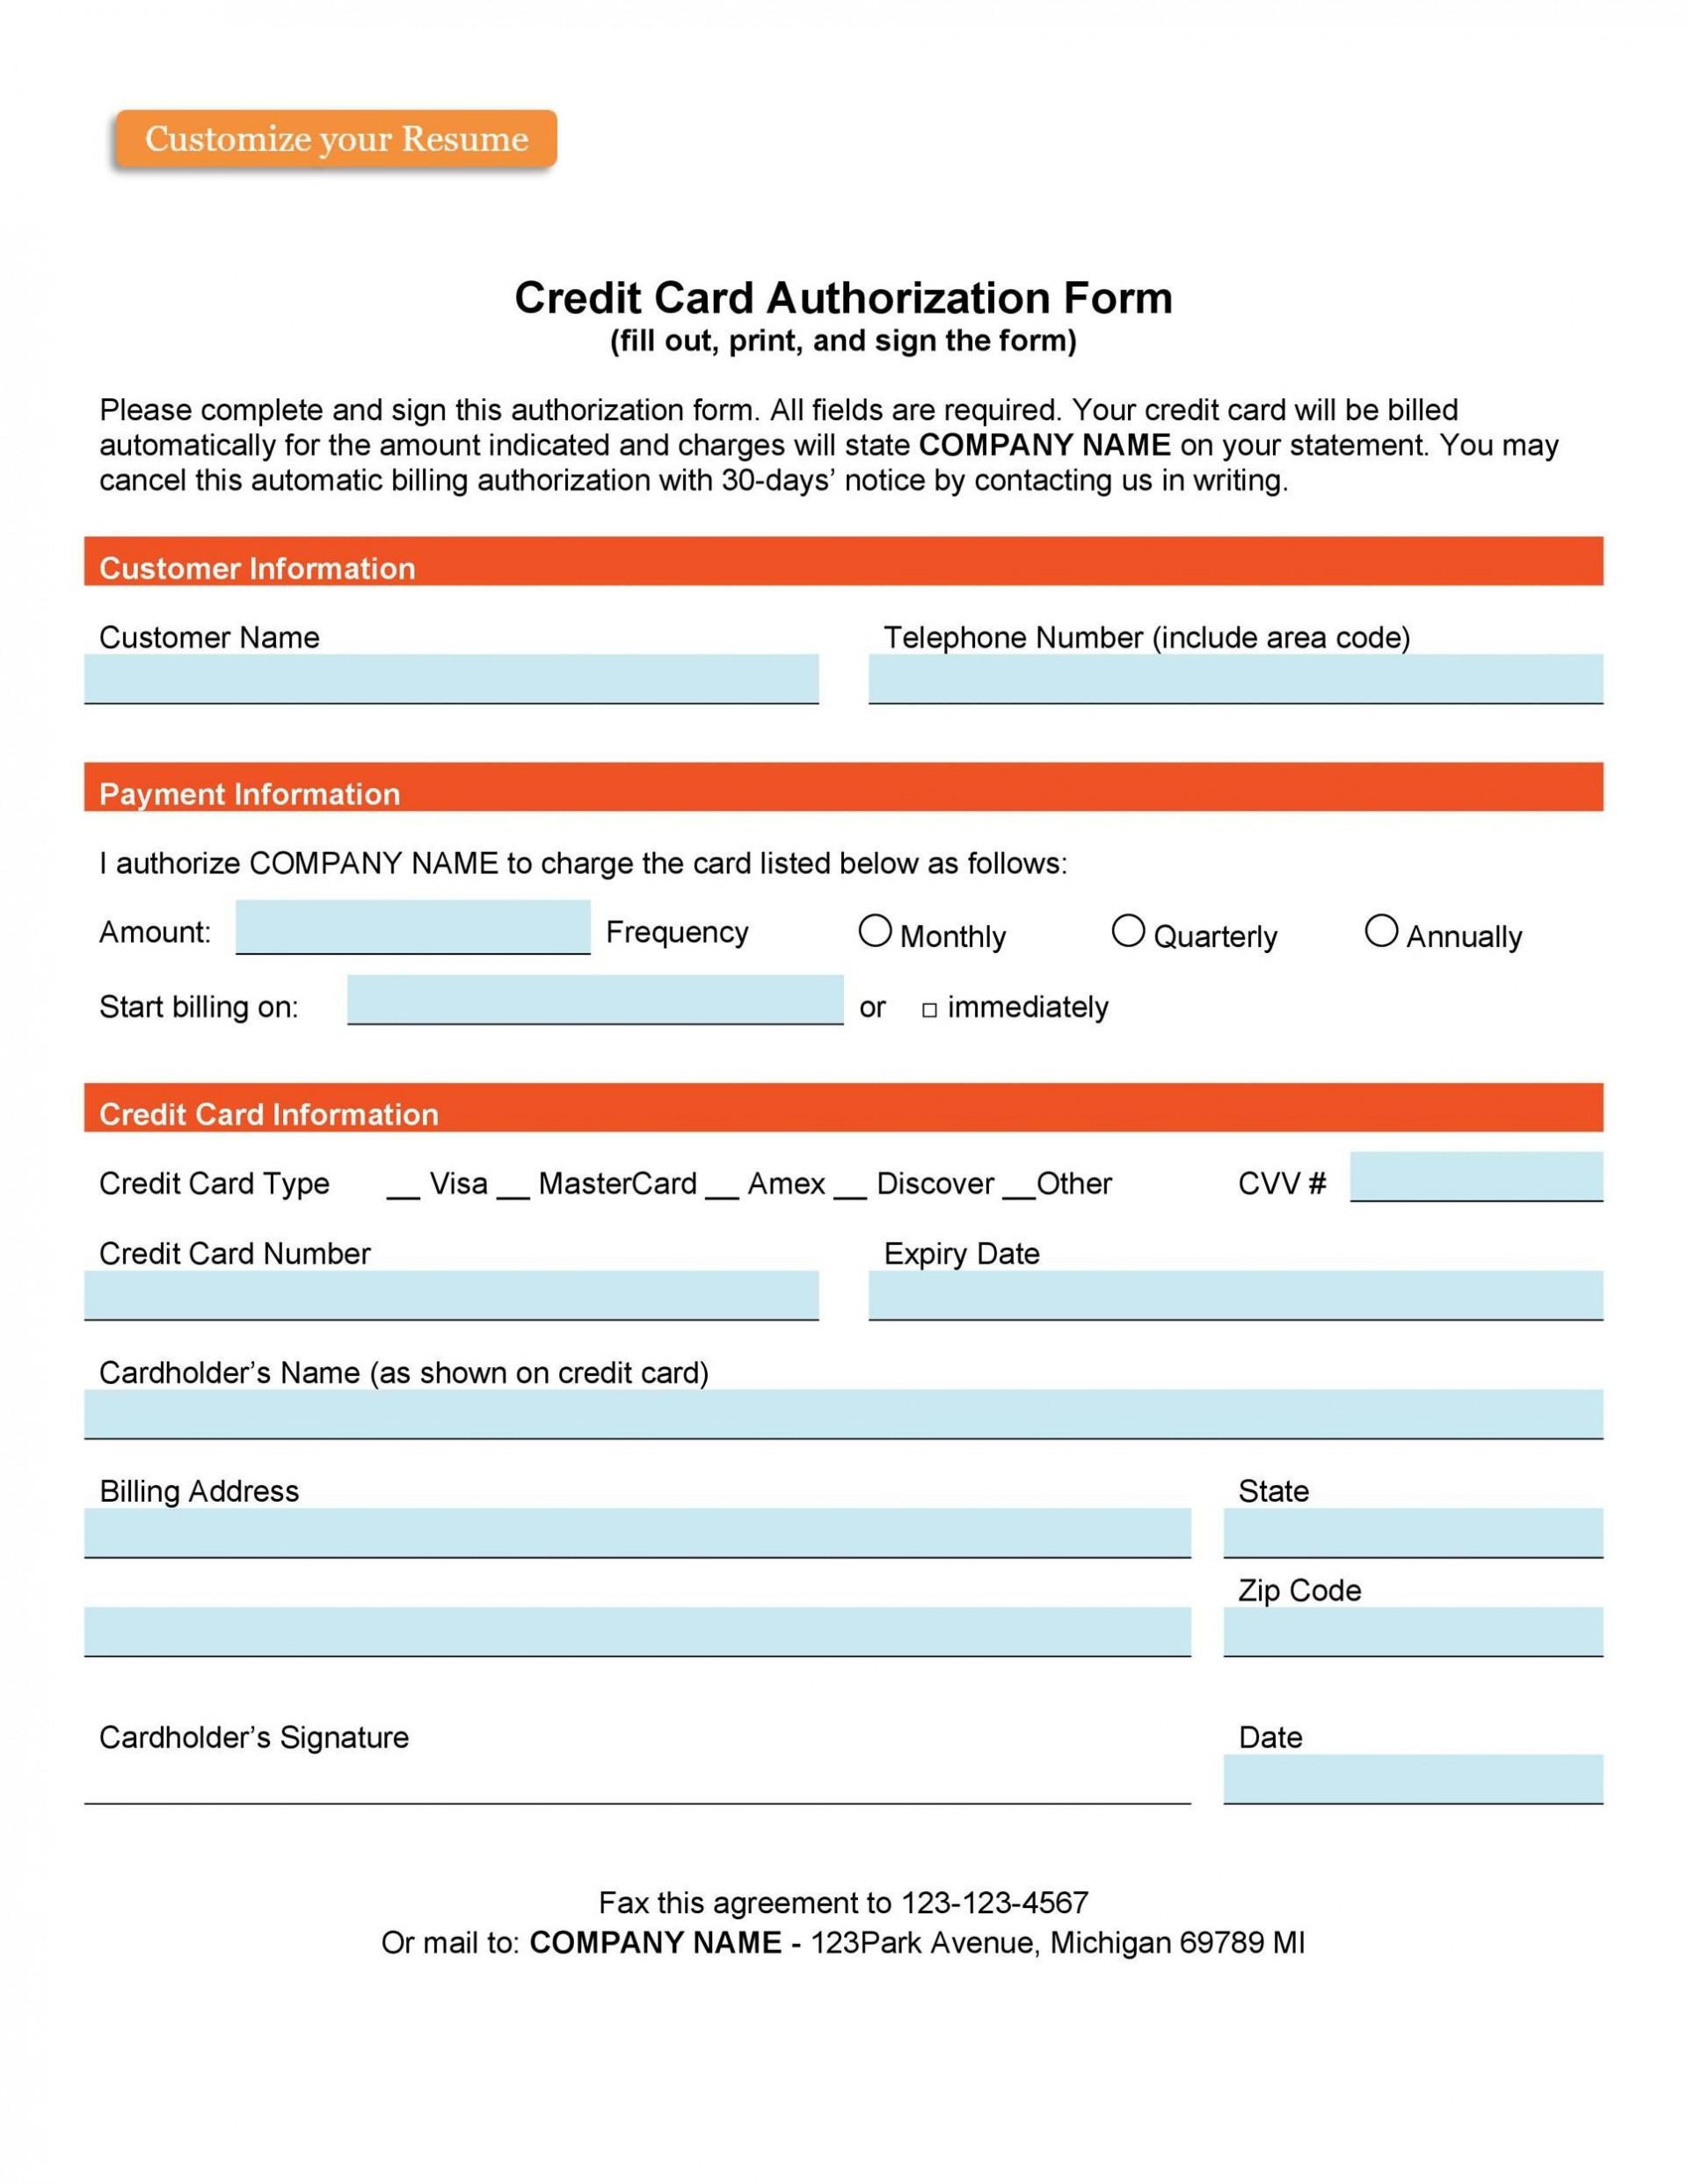 007 Unbelievable Credit Card Form Template Highest Quality  Html Example Codepen Authorization Free1920